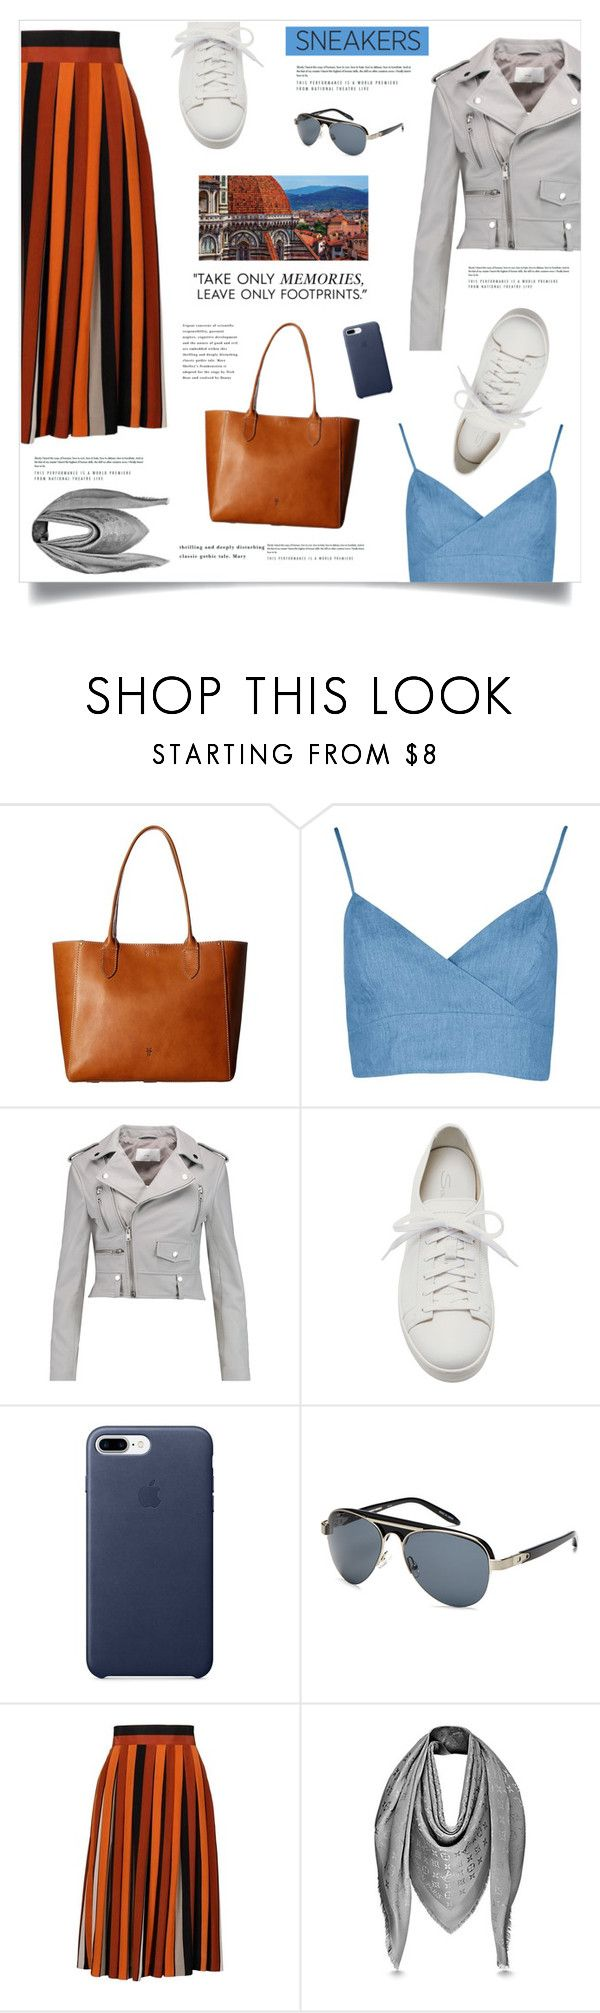 """""""Rome"""" by marina-volaric ❤ liked on Polyvore featuring Frye, W118 by Walter Baker, Santoni, Alexander Wang, Givenchy and whitesneakers"""